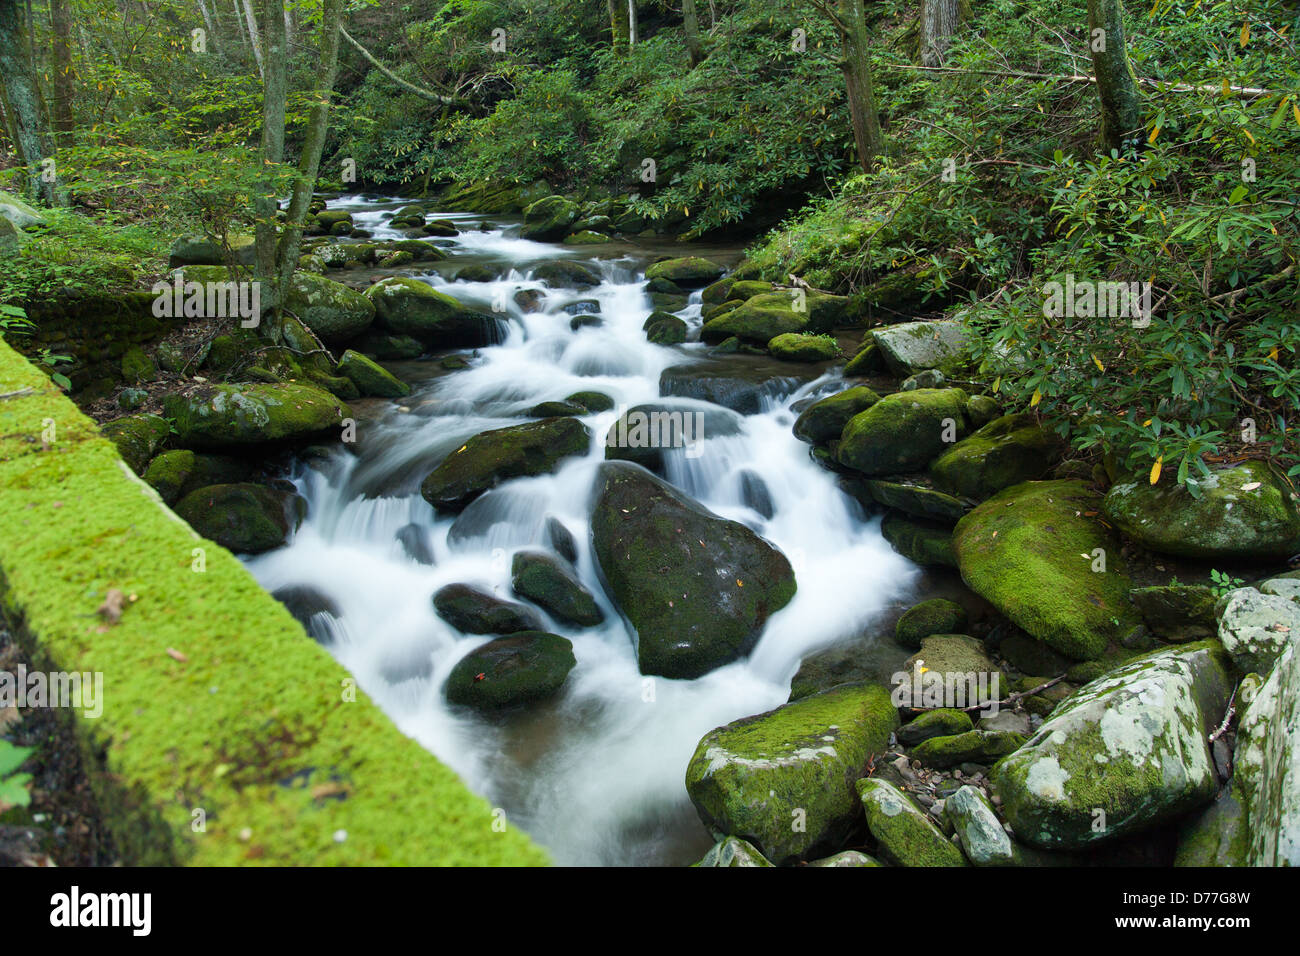 Rushing river along a road in the Great Smoky Mountain National Park. - Stock Image